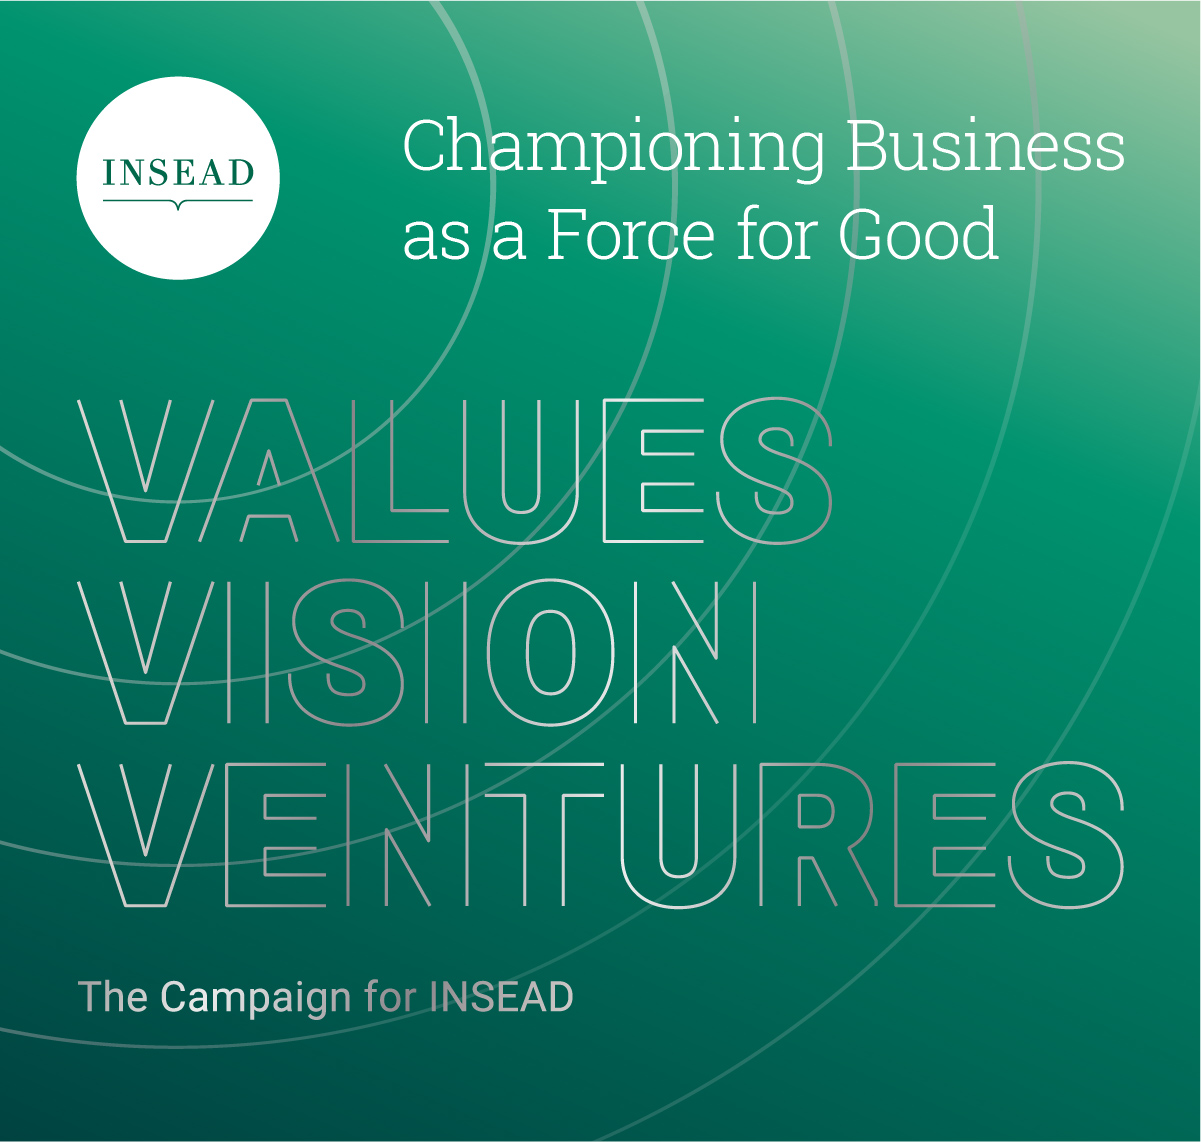 The Campaign for INSEAD - Vision, Values, Ventures